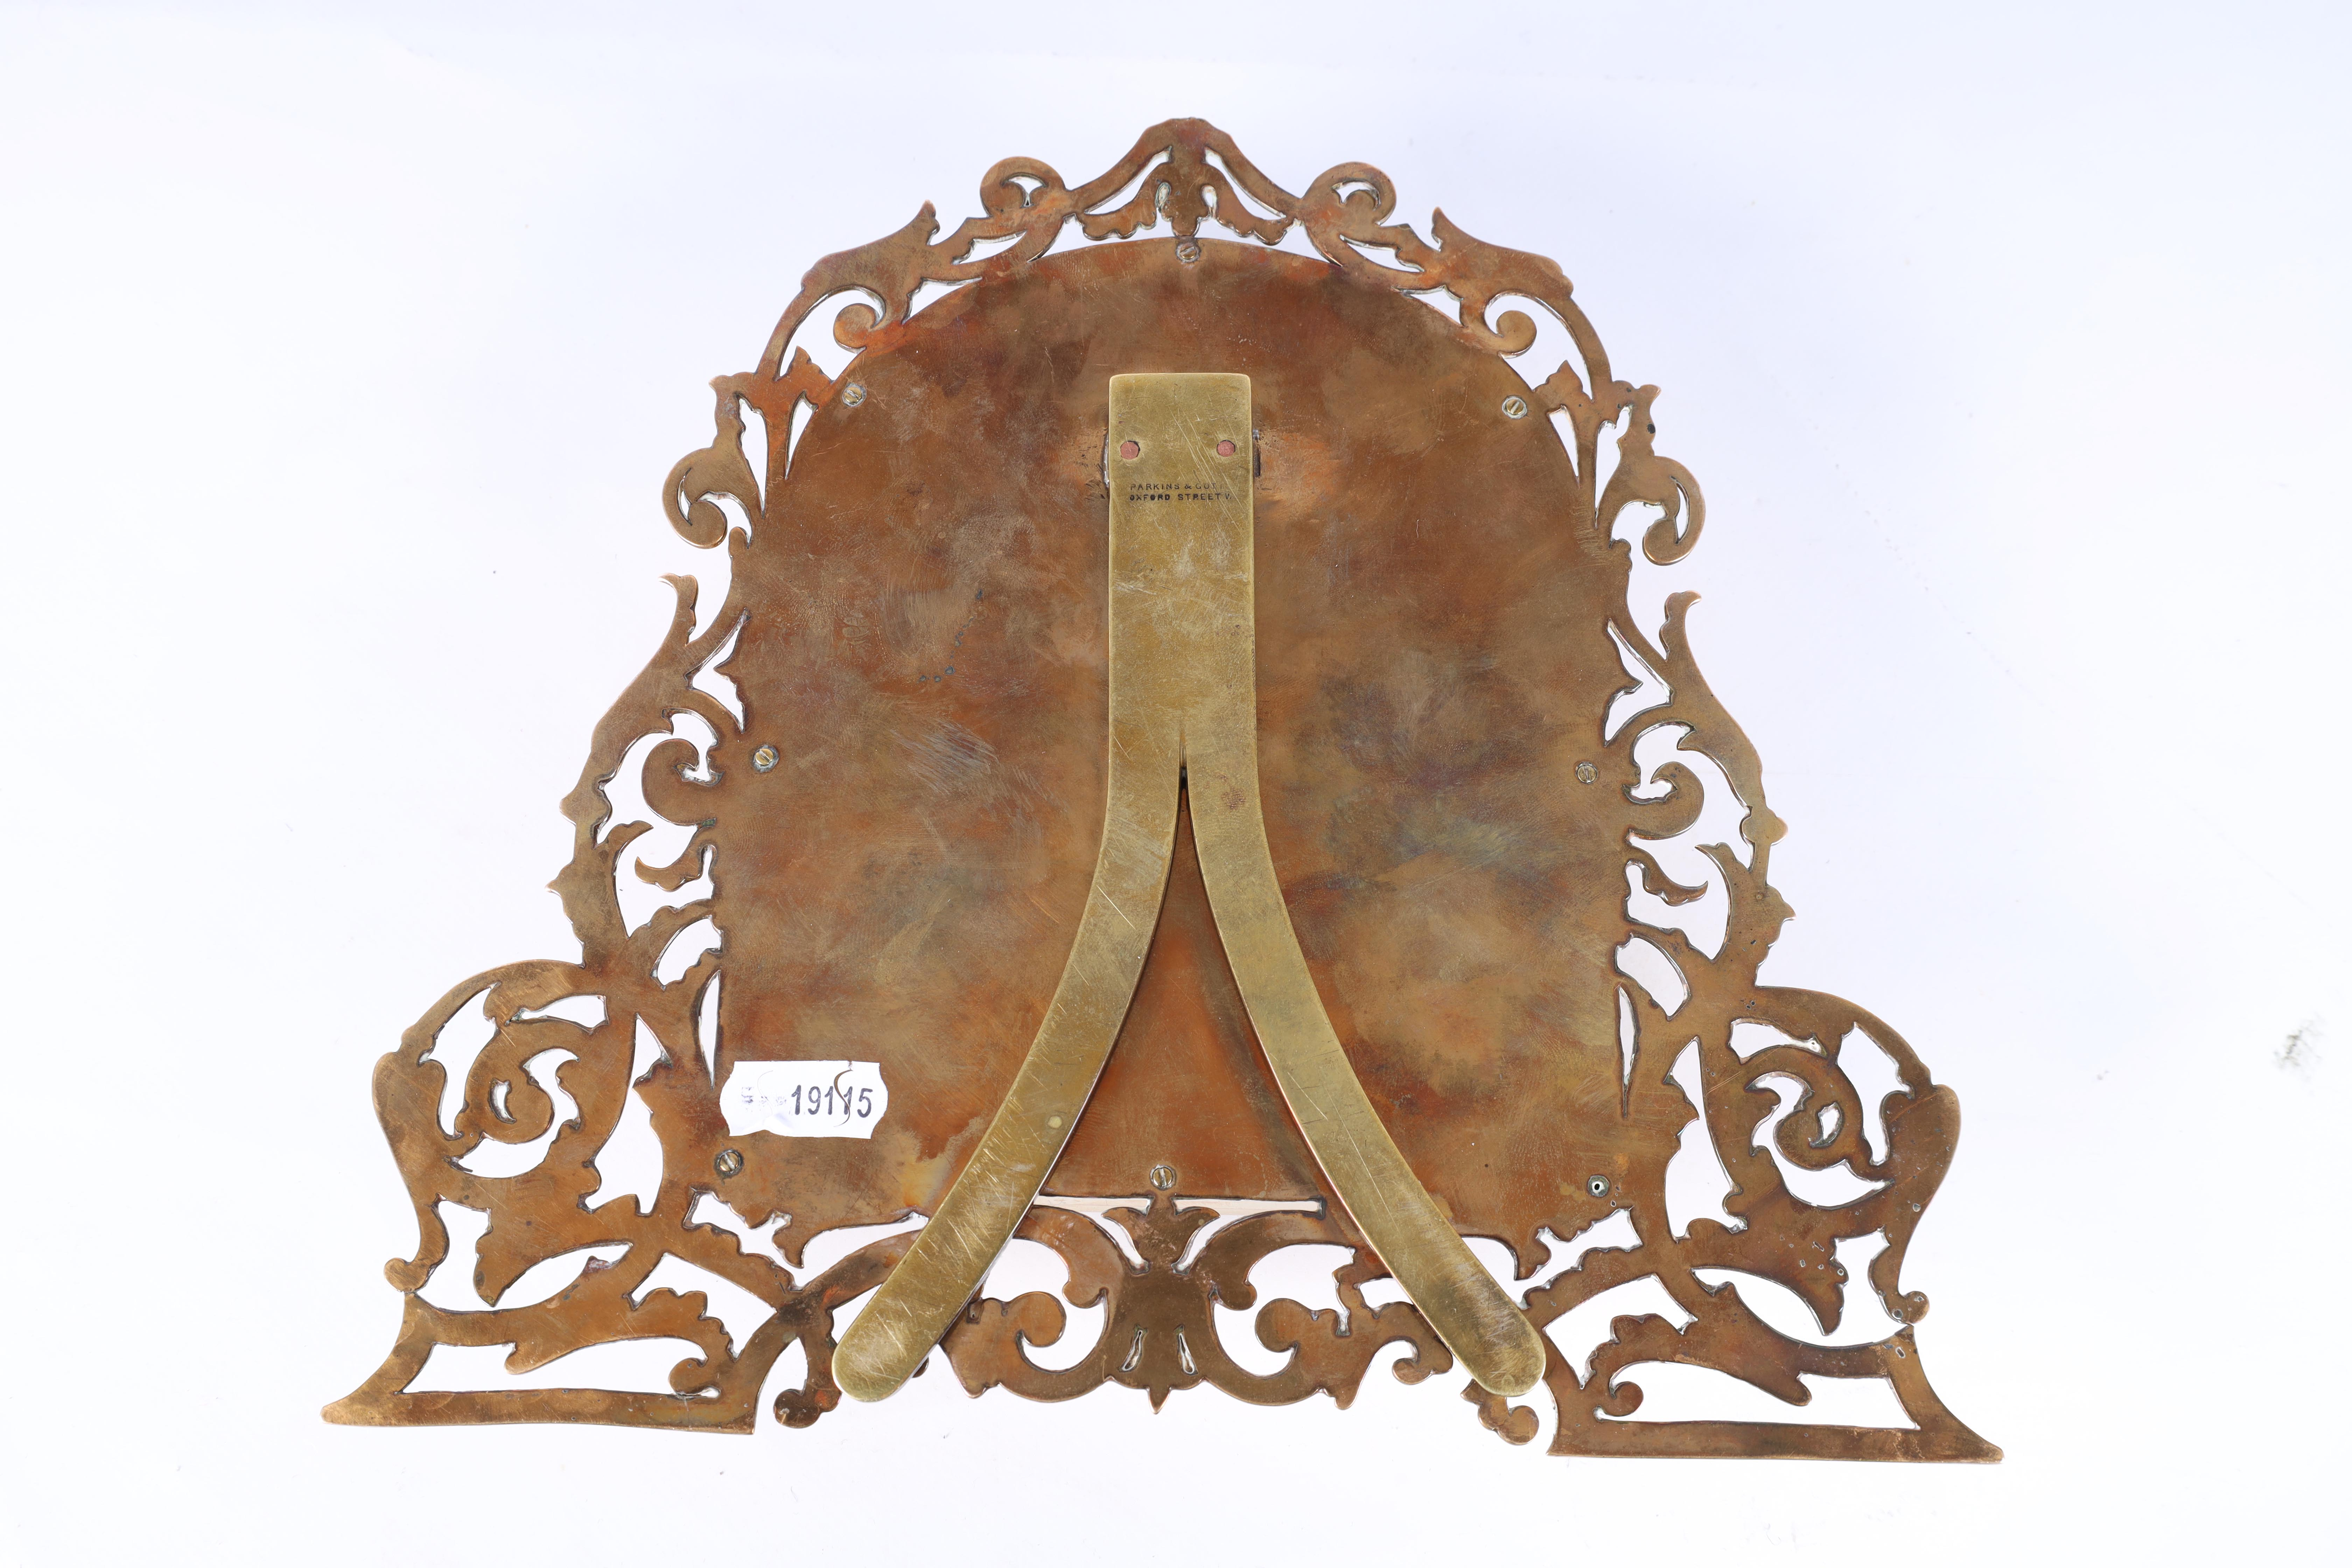 A LATE 19TH CENTURY PIERCED AND ENGRAVED BRONZE FOLDING PHOTOGRAPH FRAME the front with four - Image 8 of 8